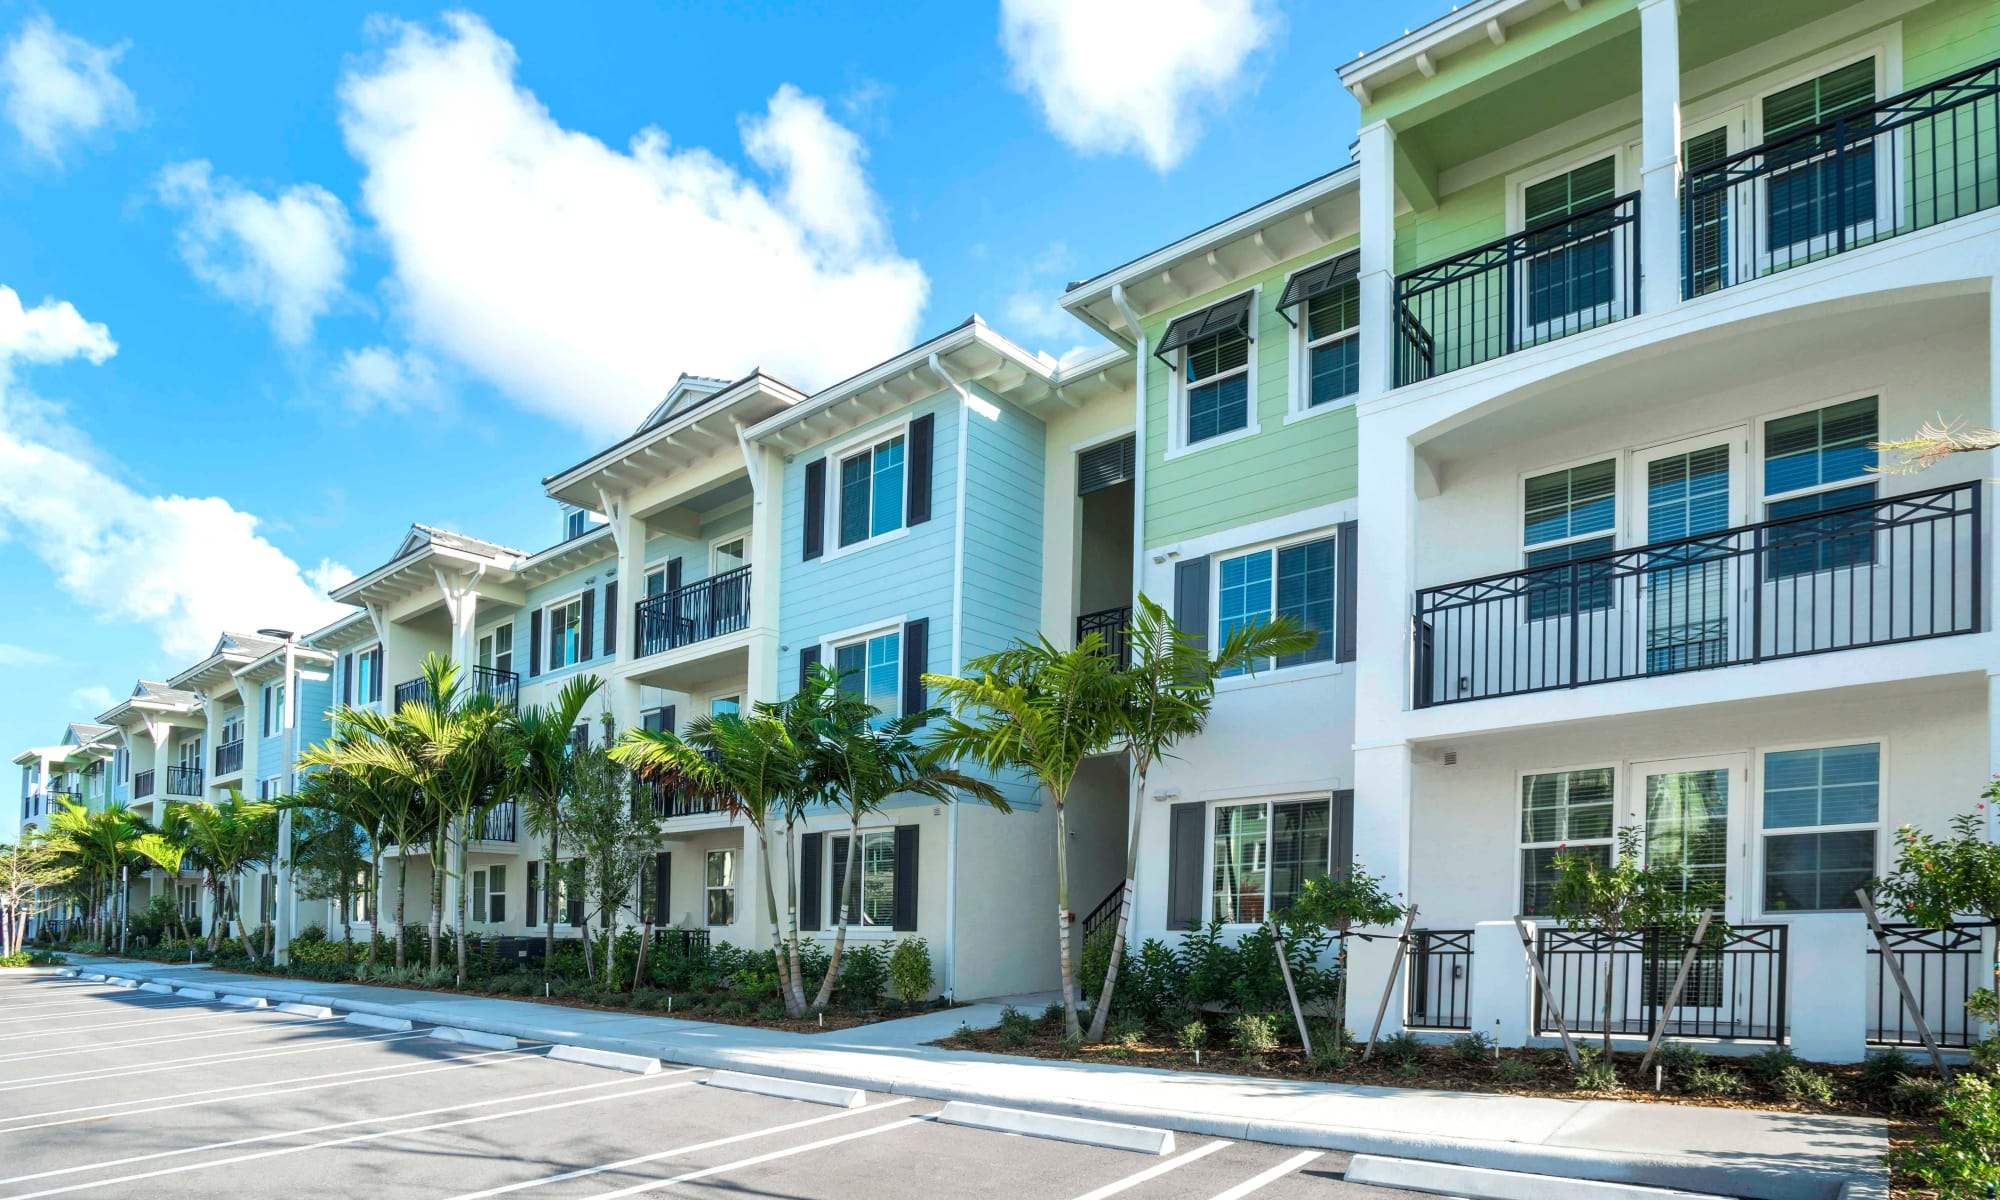 Delray Station apartments in Delray Beach Florida